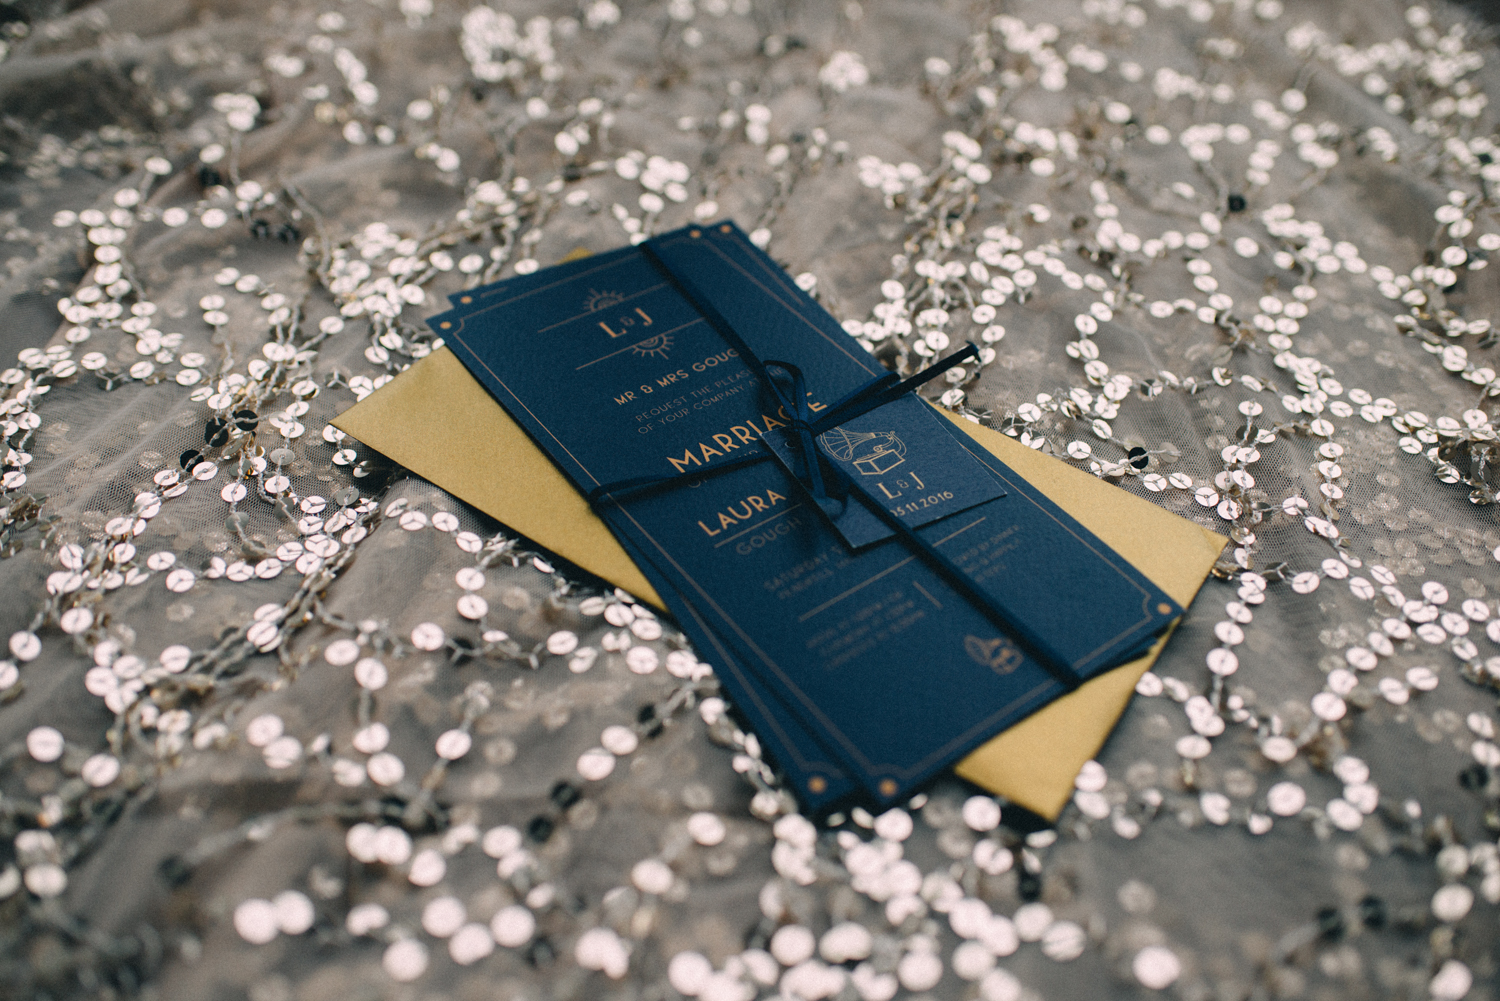 Margo Ryszczuk Photography - Its all about the glitter, sparkle and shine art deco inspired wedding shoot 8